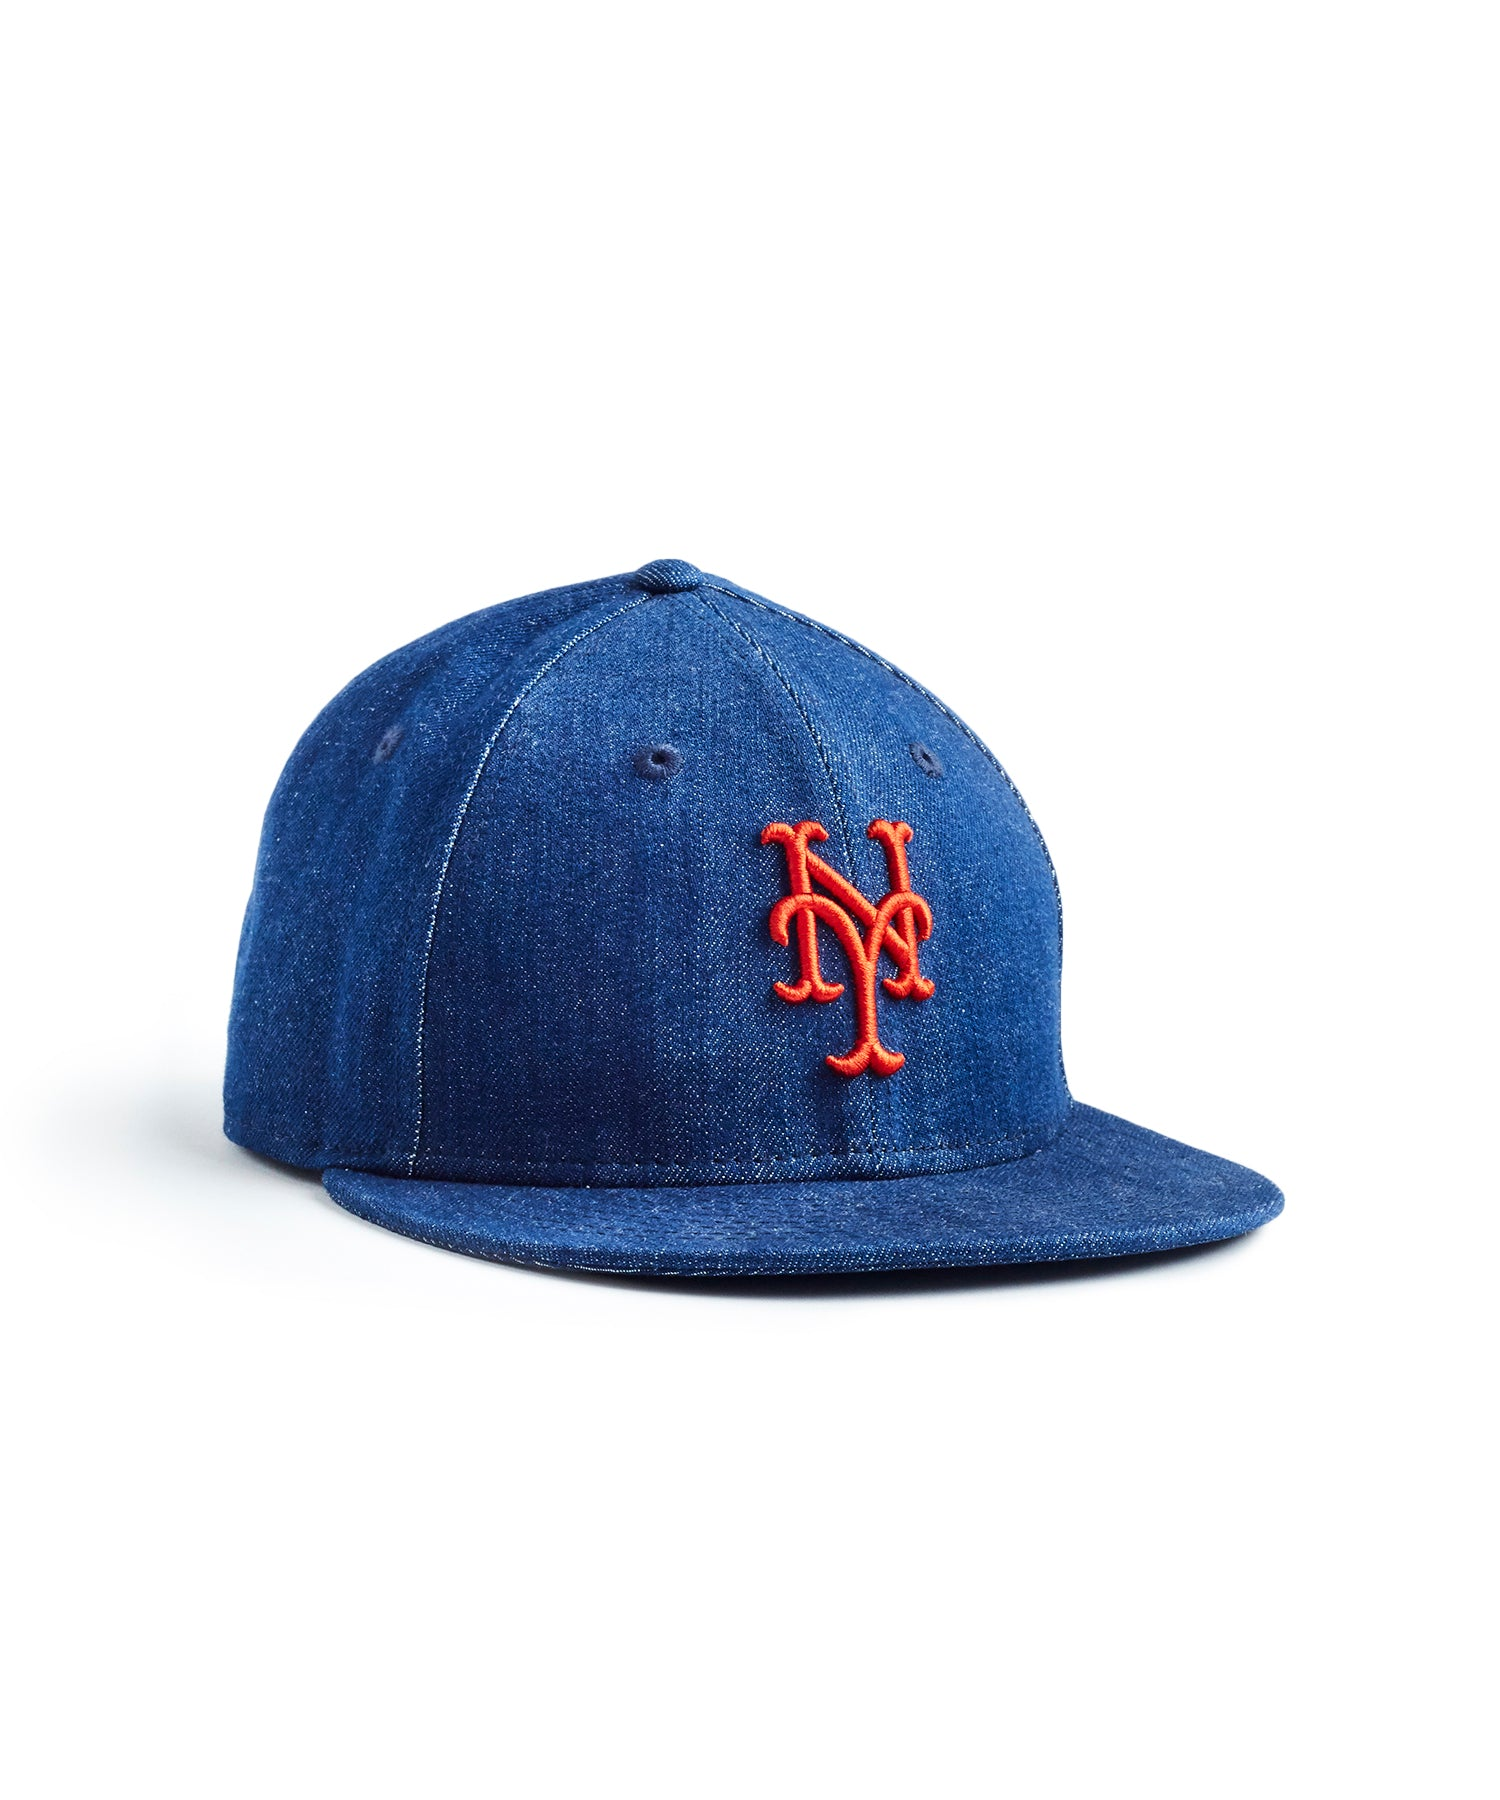 TODD SNYDER + NEW ERA MLB NEW YORK METS CAP IN CONE DENIM